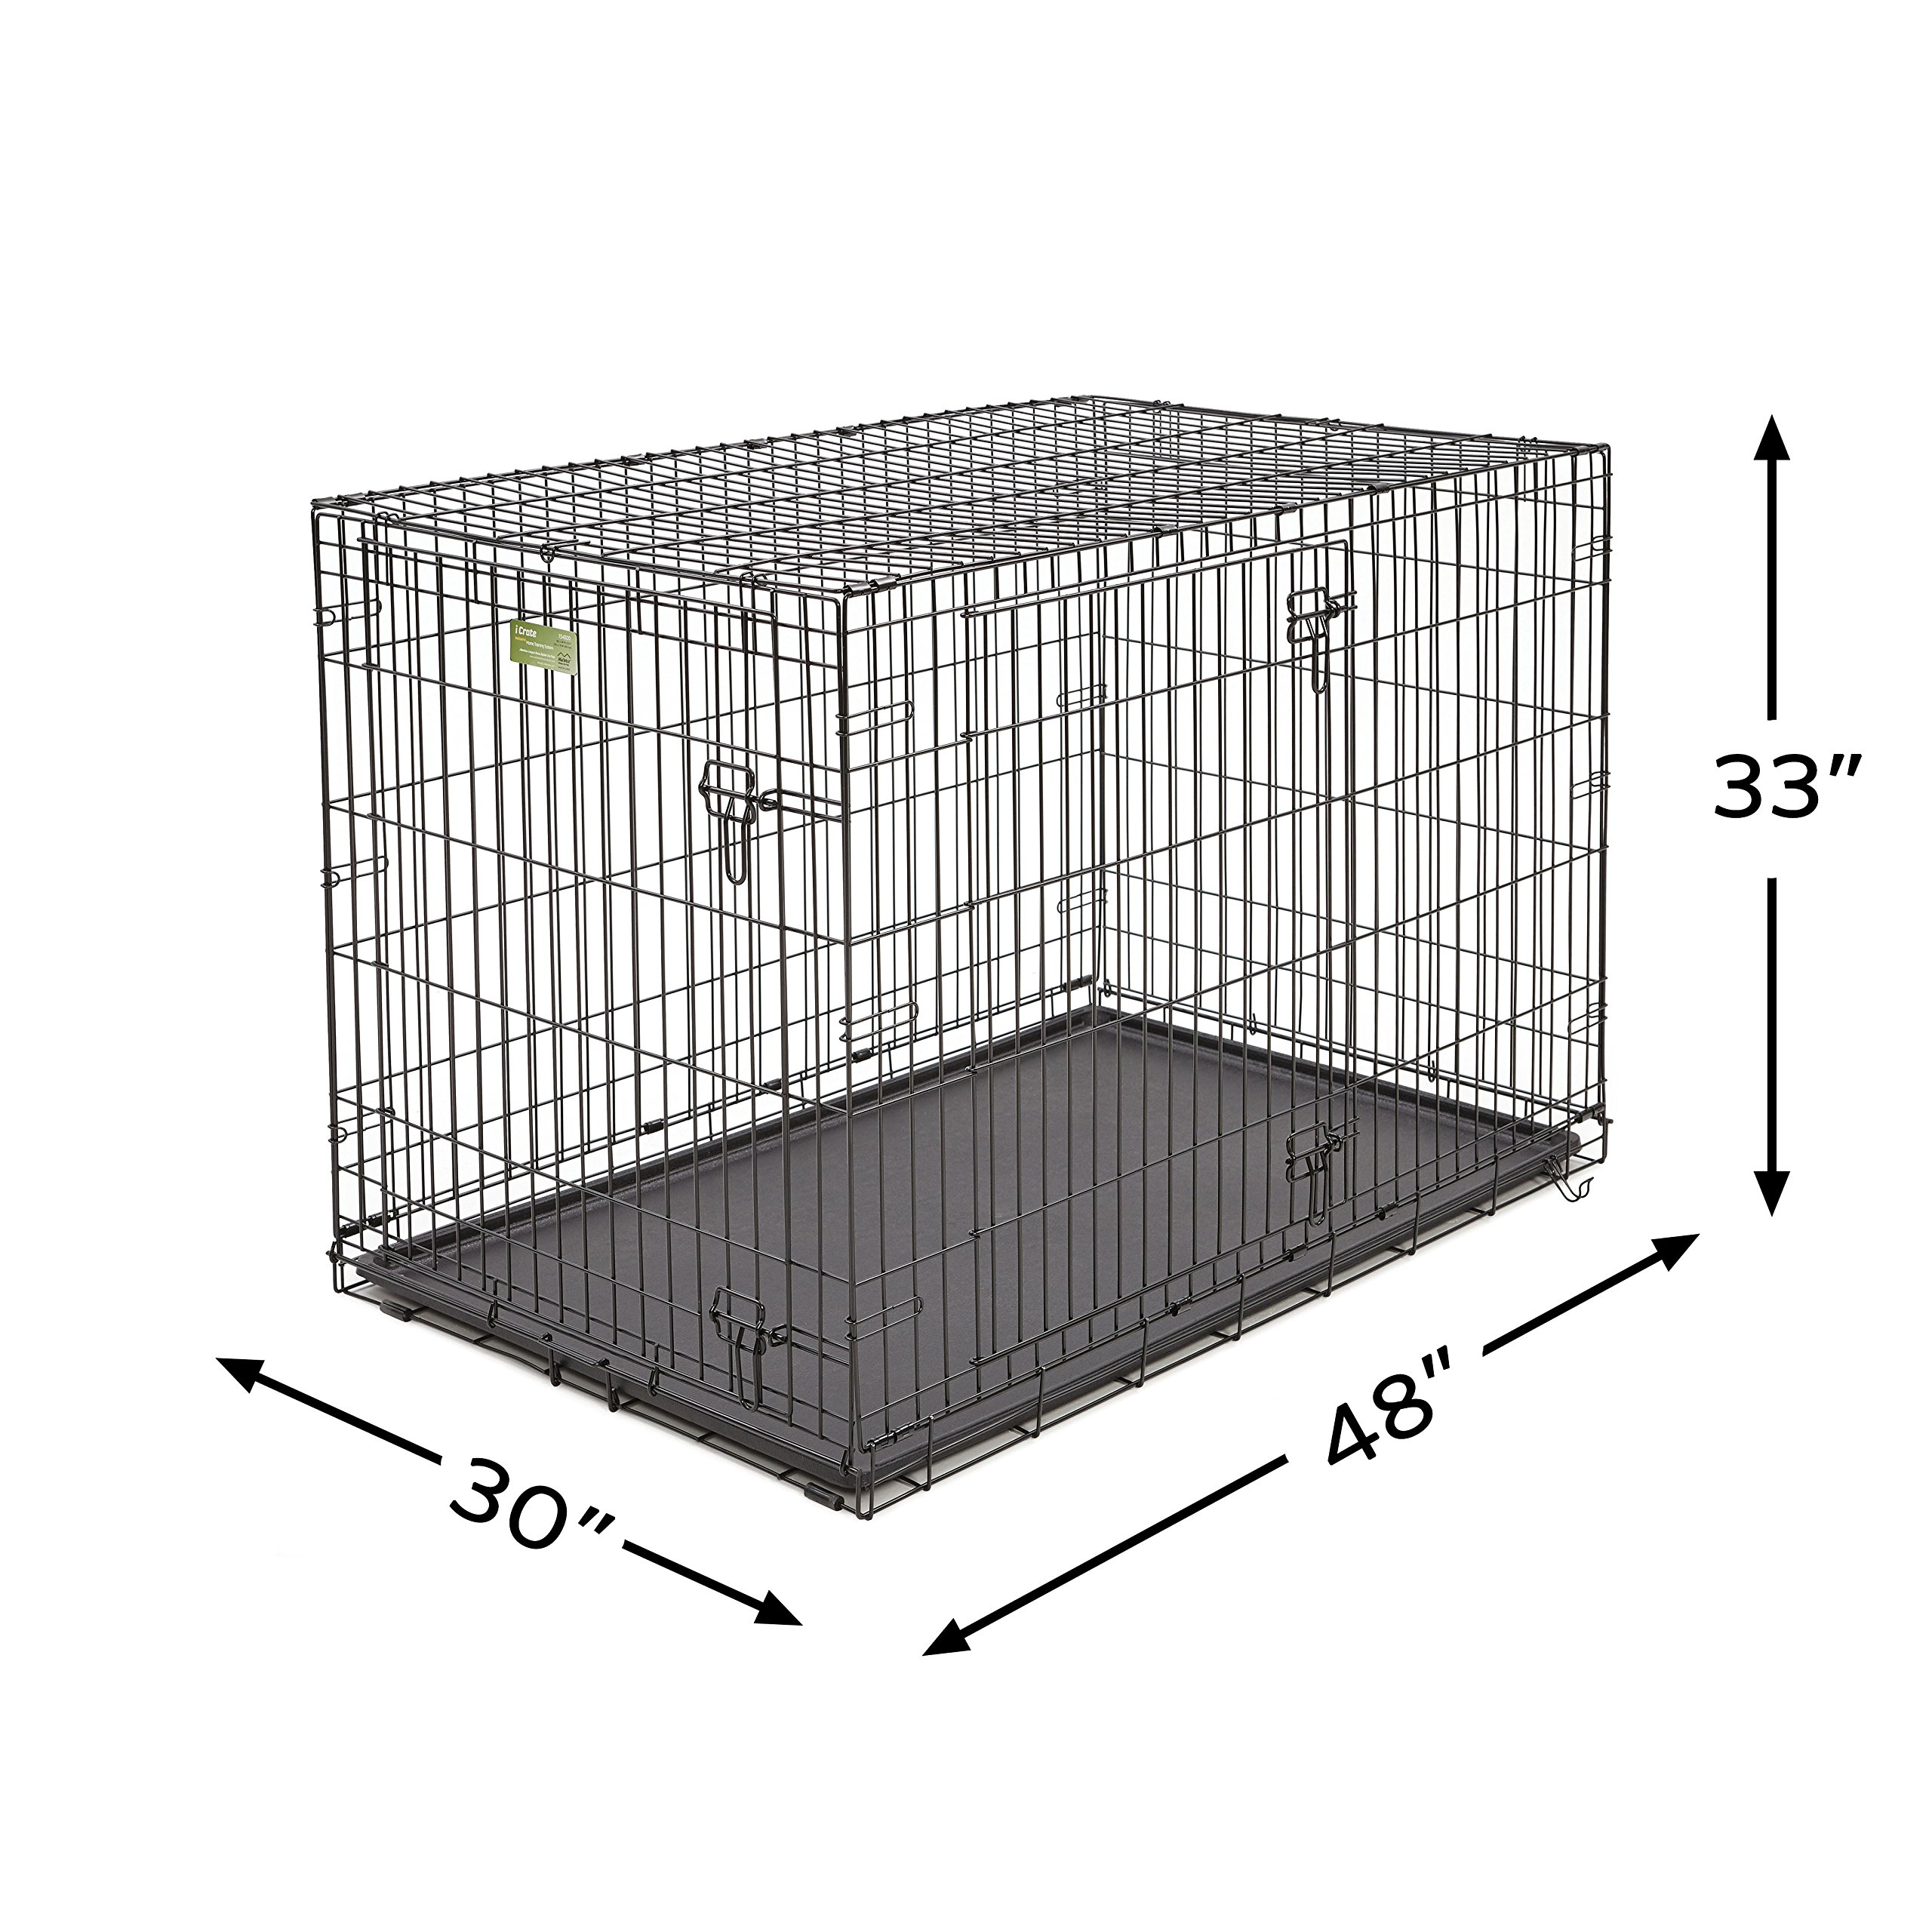 XL Dog Crate | MidWest iCrate Double Door Folding Metal Dog Crate w/ Divider Panel, Floor Protecting Feet & Leak-Proof Dog Tray | 48L x 30W x 33H Inches, XL Dog Breed, Black by MidWest Homes for Pets (Image #5)